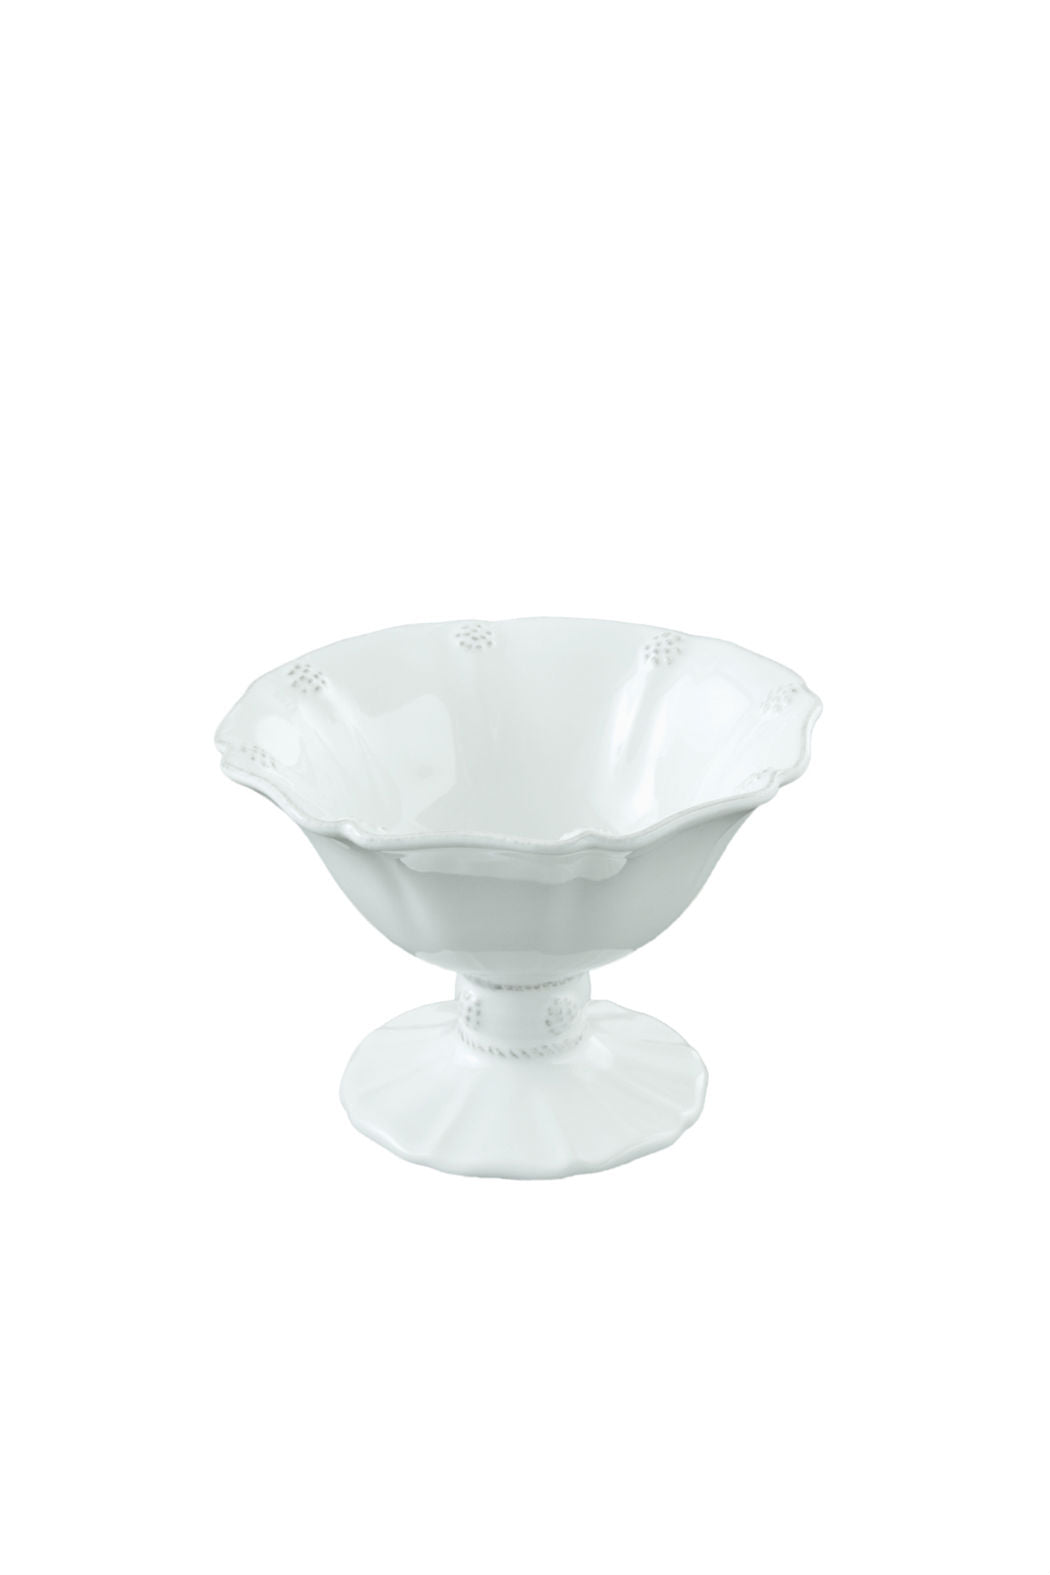 Juliska Berry & Thread Whitewash Small Footed Compote